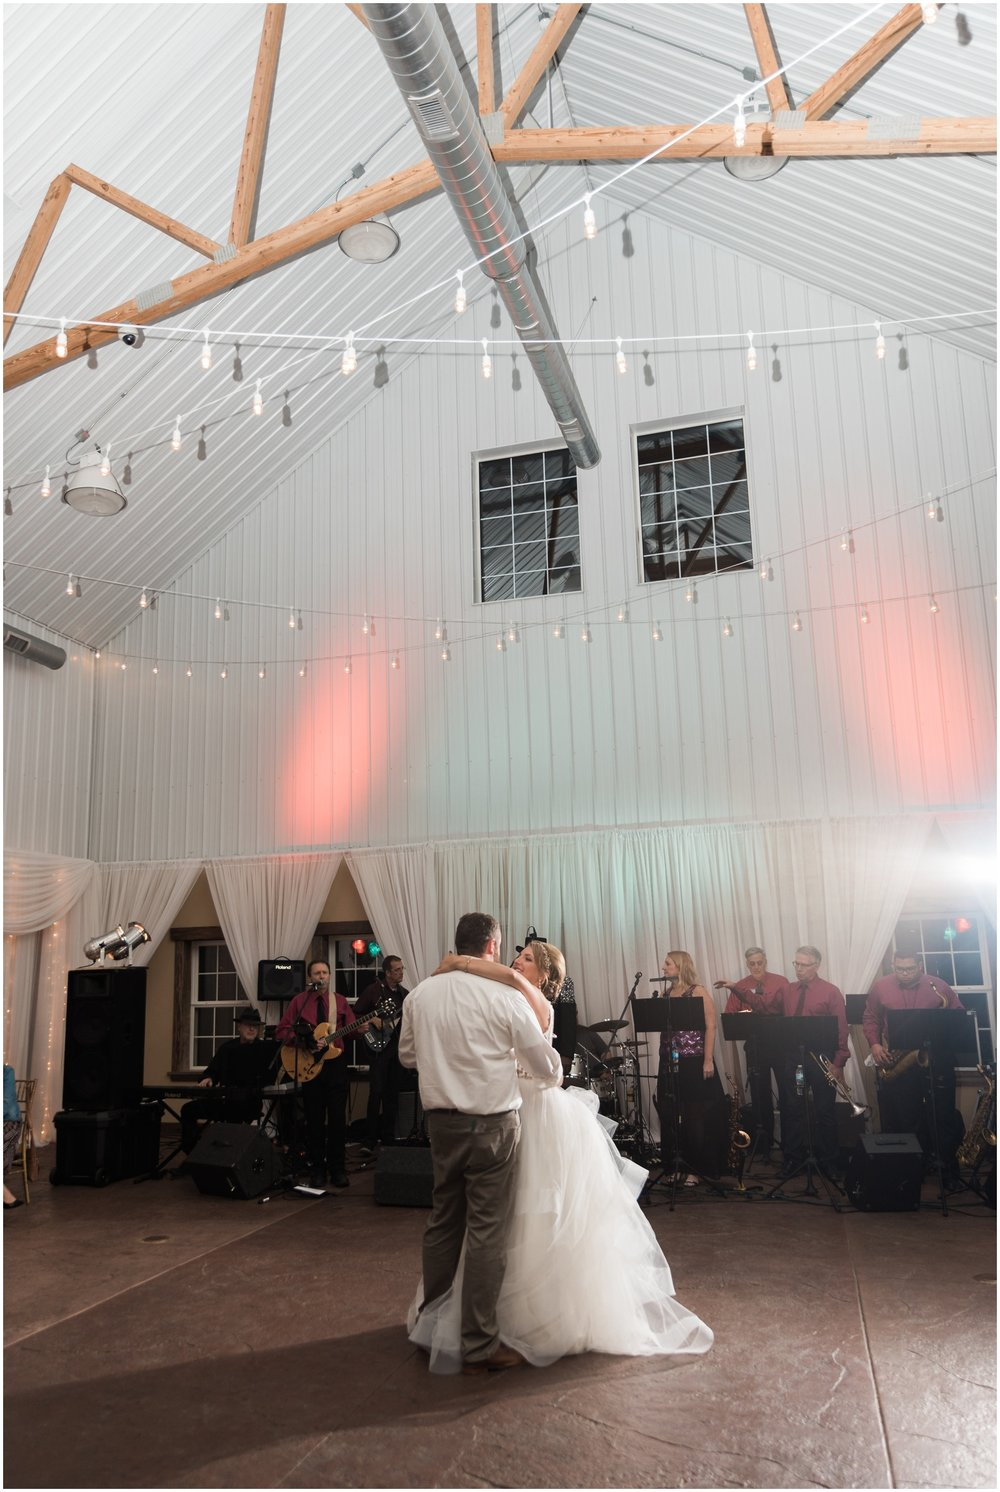 Minnesota-Wedding-Venue- Chaska-MN-Rustic-Barn-Weddings_0614.jpg